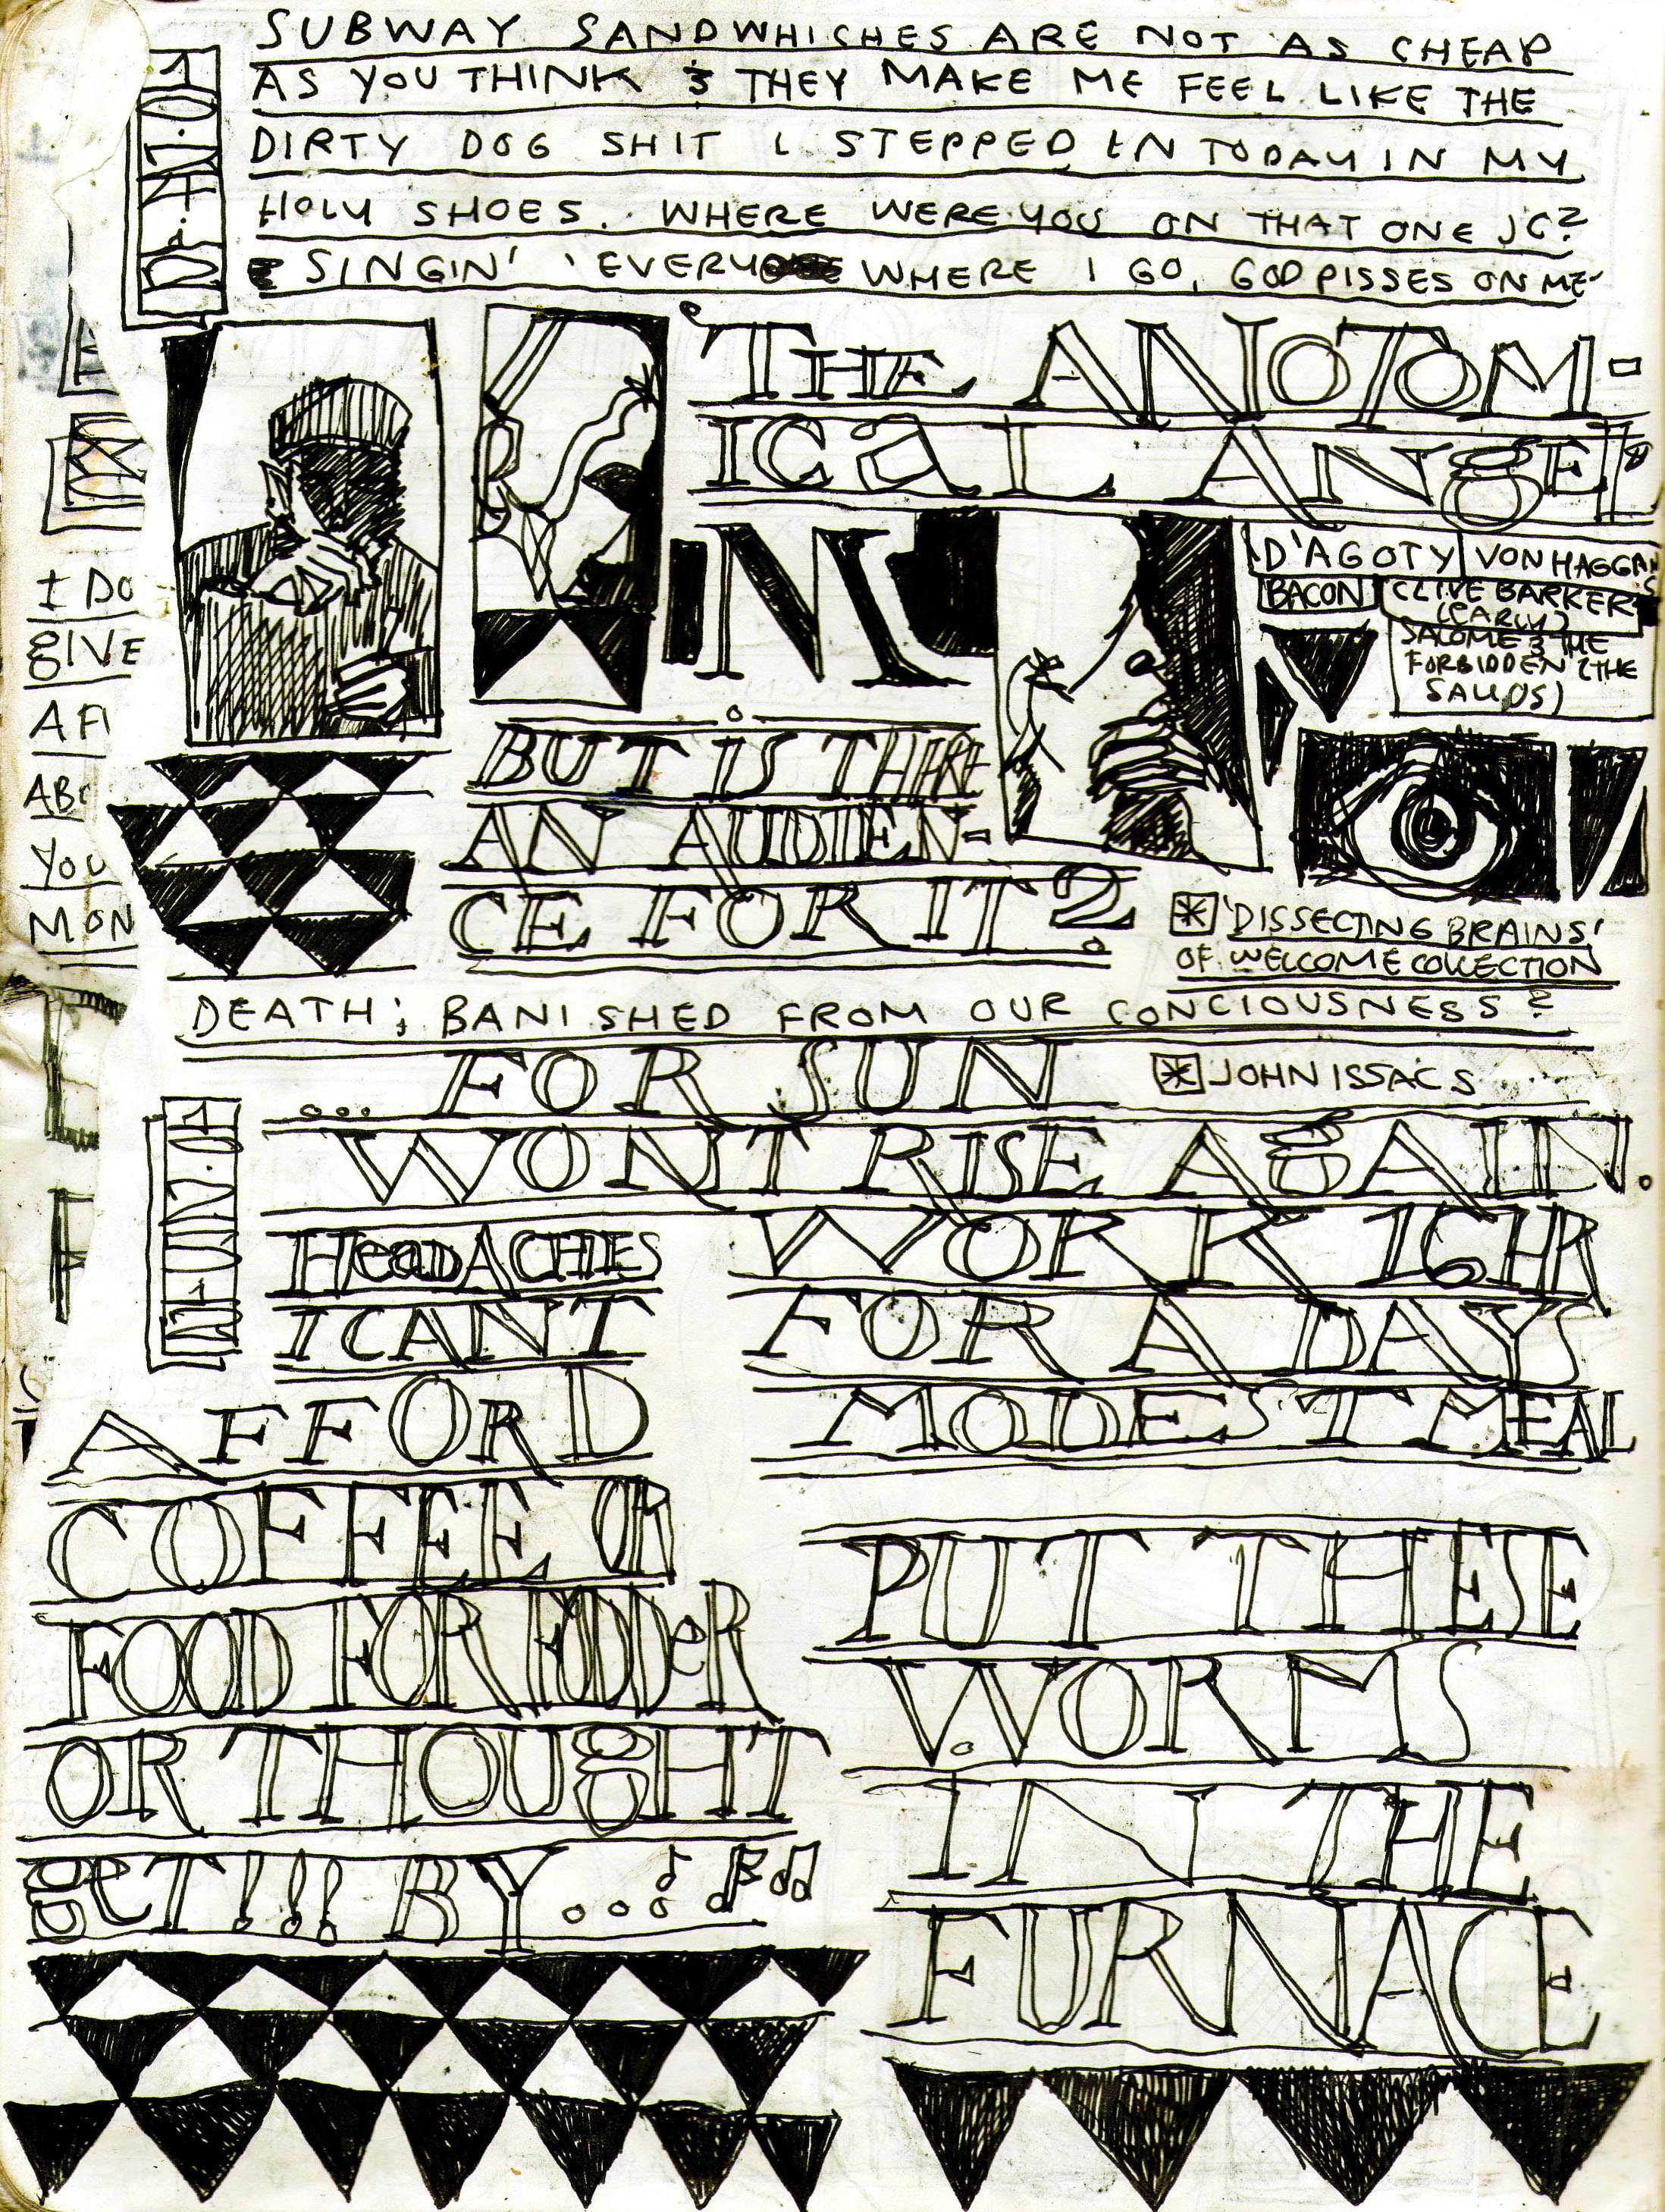 Sketchbook Journal #12: (RE)Immolation in Pagan Winter: page 12